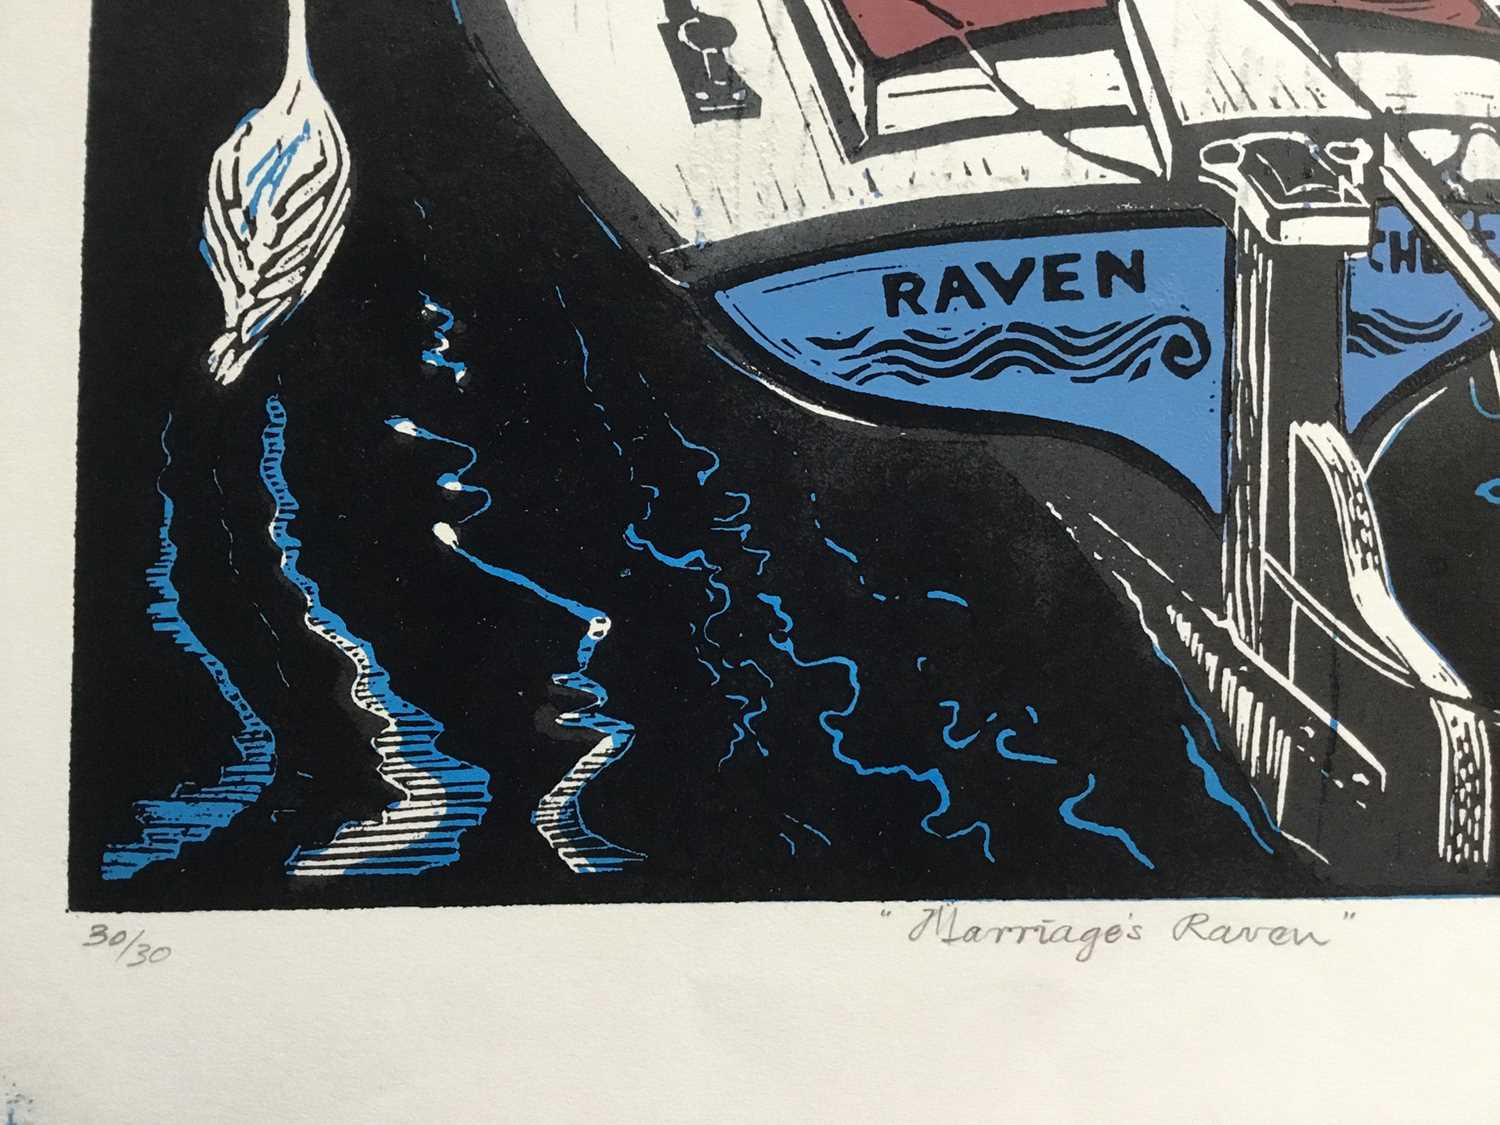 Penny Berry Paterson (1941-2021) colour linocut print, Marriages Raven, signed and numbered 30/30, 4 - Image 3 of 3